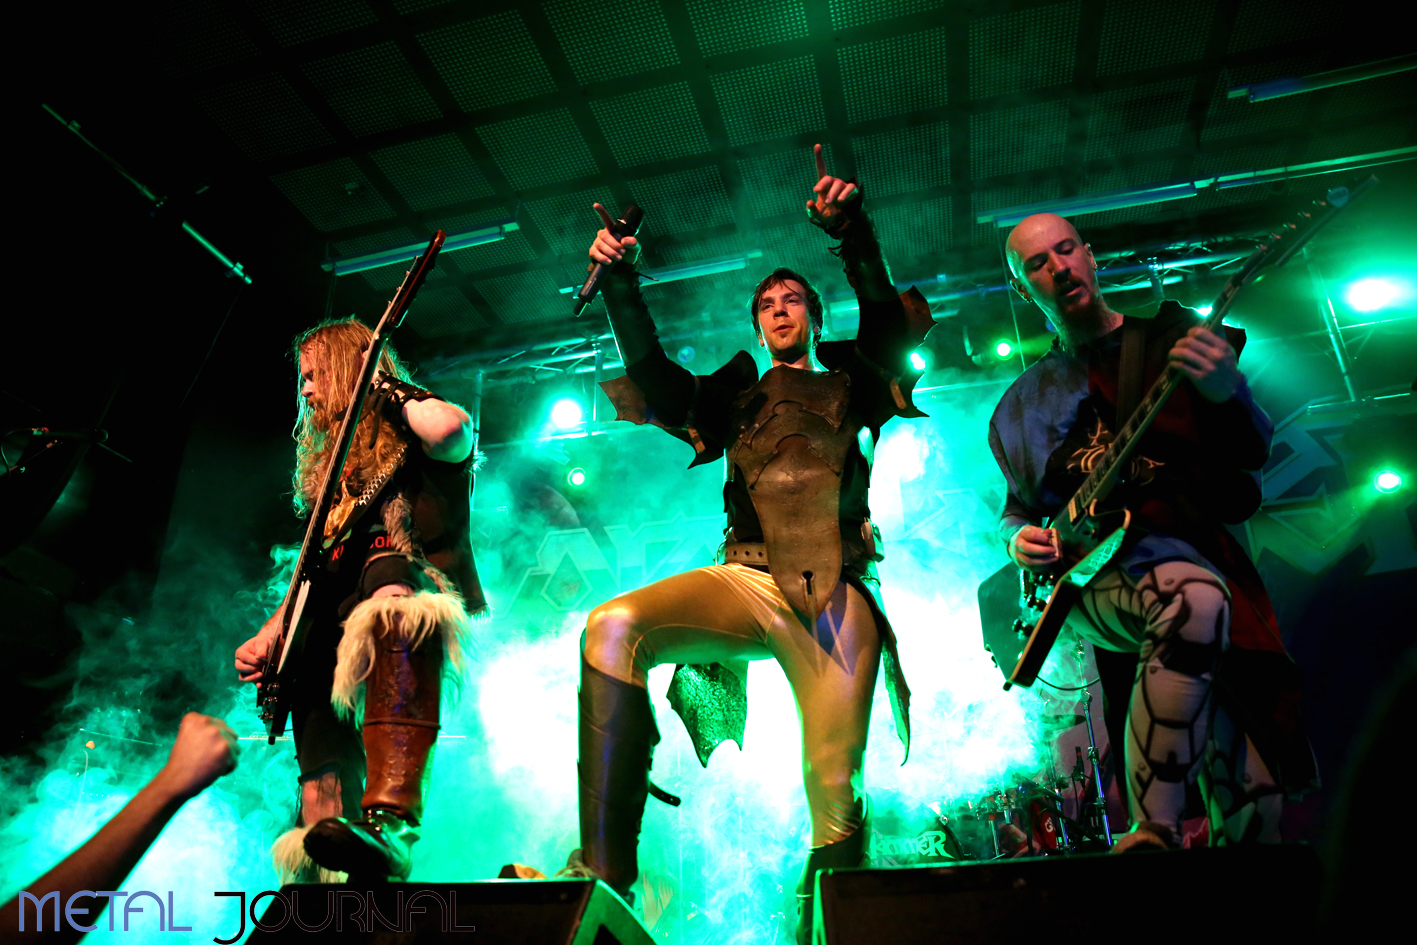 gloryhammer - metal journal 2018 pic 4